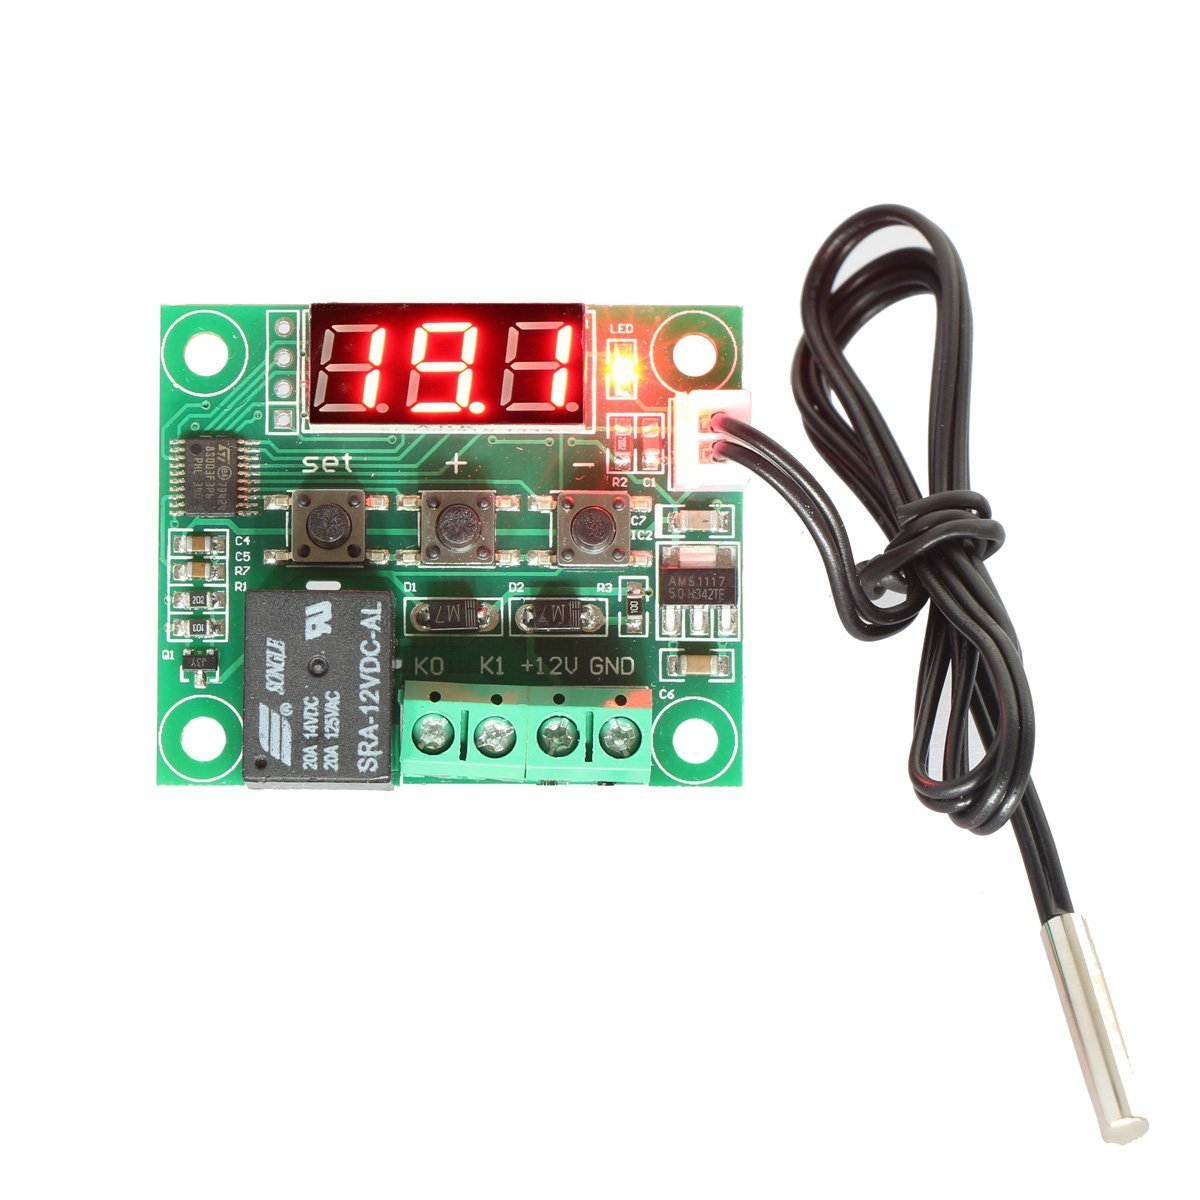 Riorand 12v Dc Digital Cooling Heating Thermostat Temp Control 50 The Relay And To Another Circuit 110 C Temperature Controller 10a With Waterproof Sensor Probe